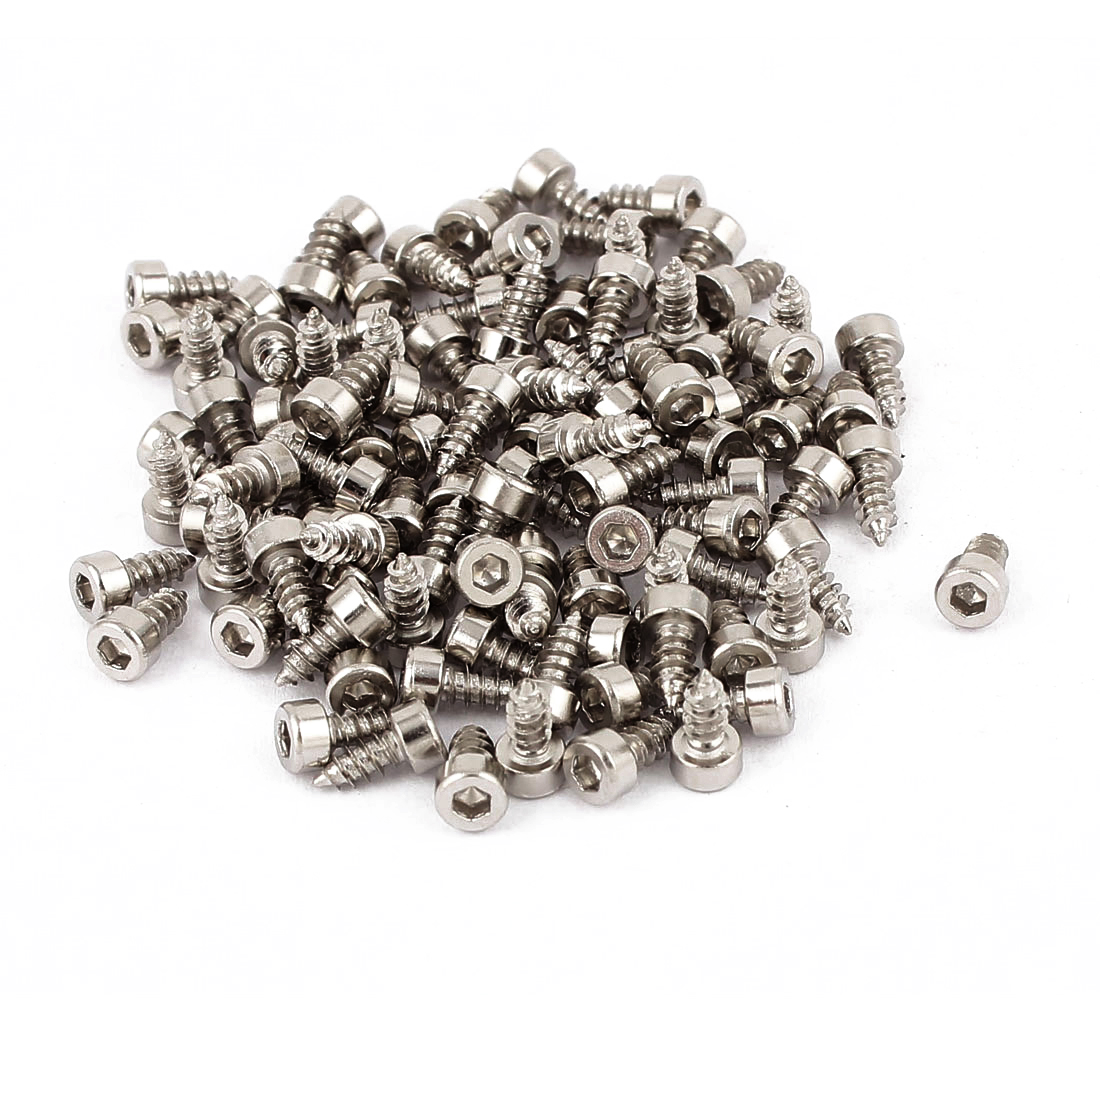 2.6mm x 6mm Full Thread Nickel Plated Hex Head Self Tapping Screws 100 Pcs